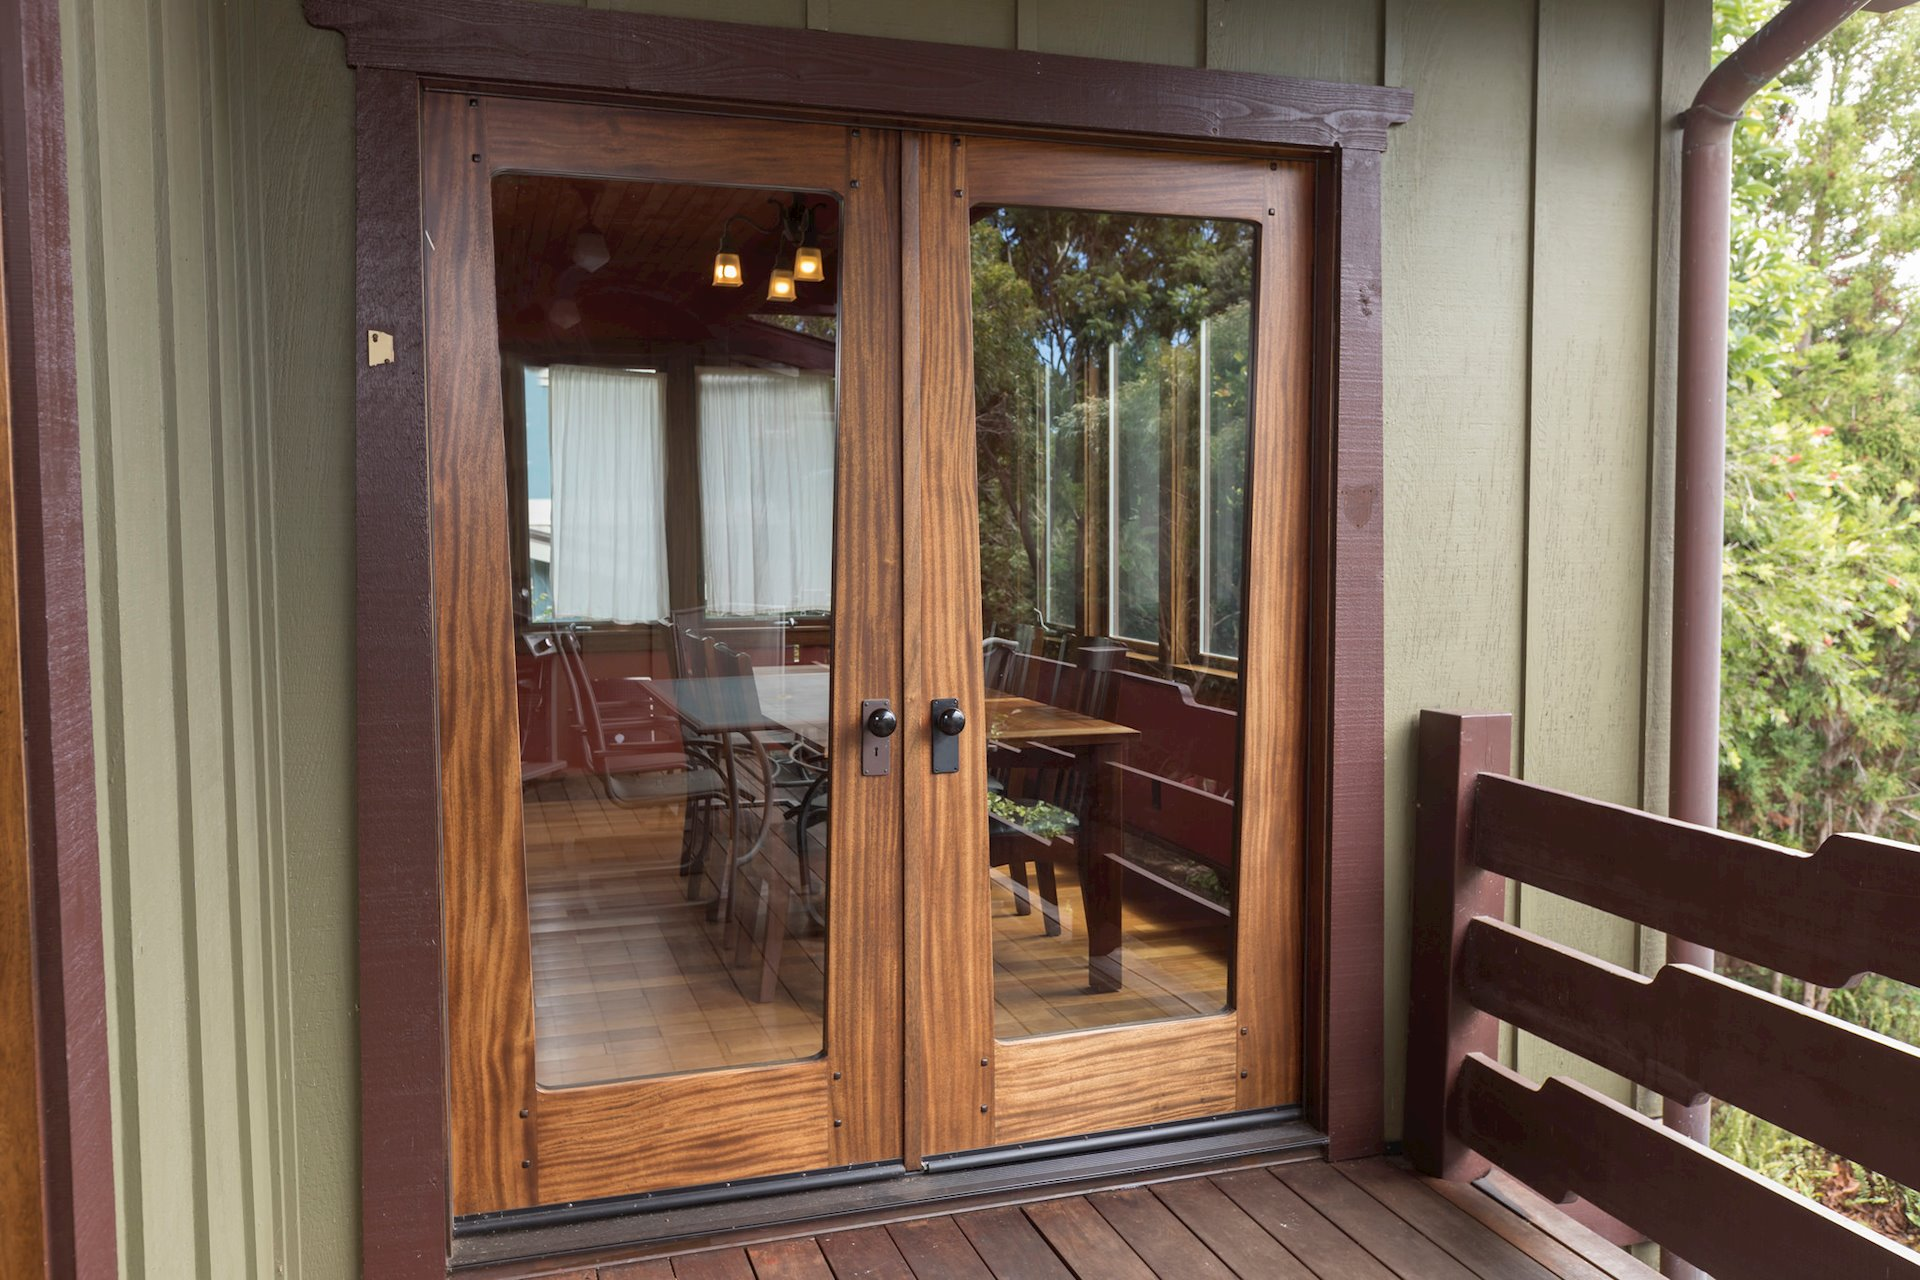 Custom Mahogany doors, window frames and baseboards throughout the home, garage and work shop.